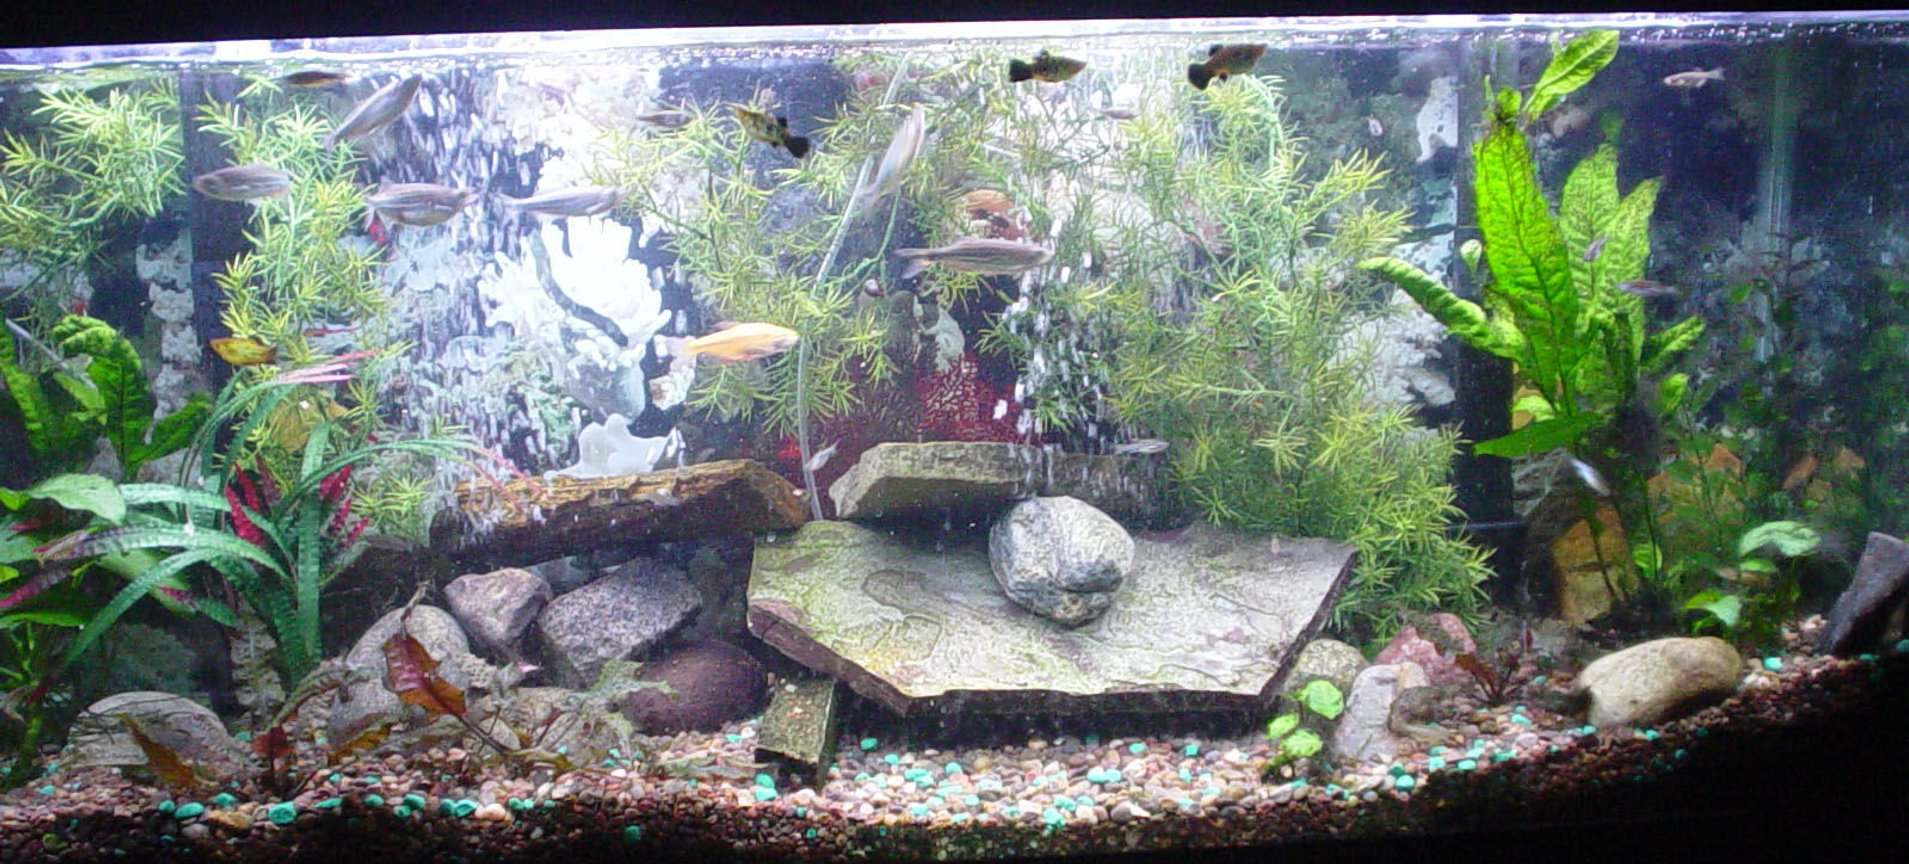 55 gallons freshwater fish tank (mostly fish and non-living decorations) - I think some good changes have been made